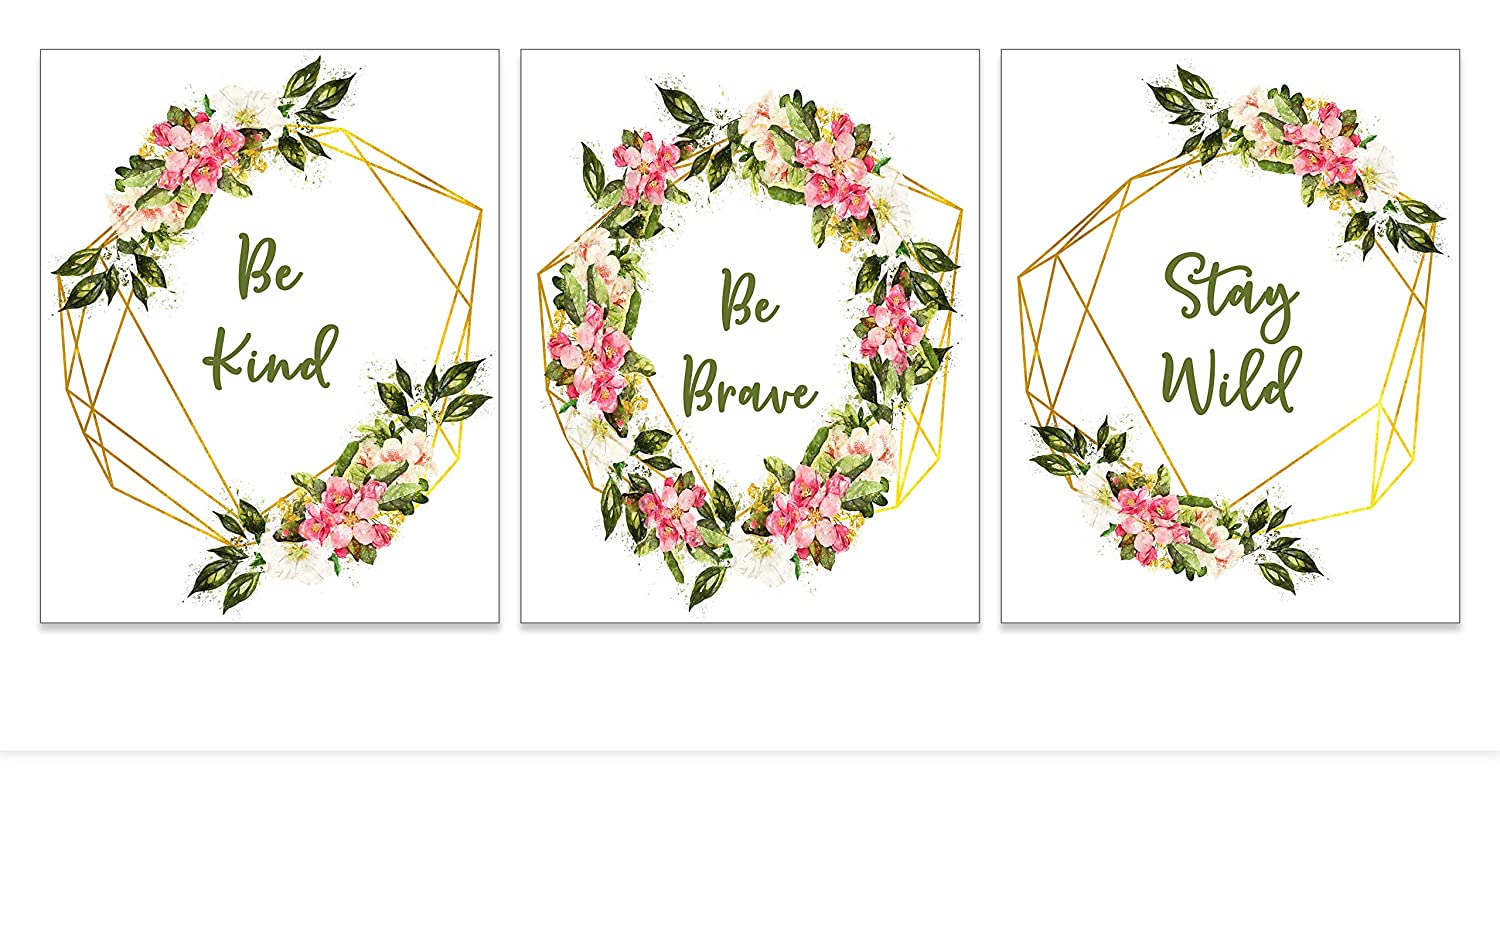 Amazon Com Strong Girls Floral Wreath Art Prints Inspirational Quote Wall Posters For Teenagers Boho Bedroom Wall Decor Shabby Chic Inspirational Artwork For Teens Women Set Of 3 8x10 Unframed Handmade